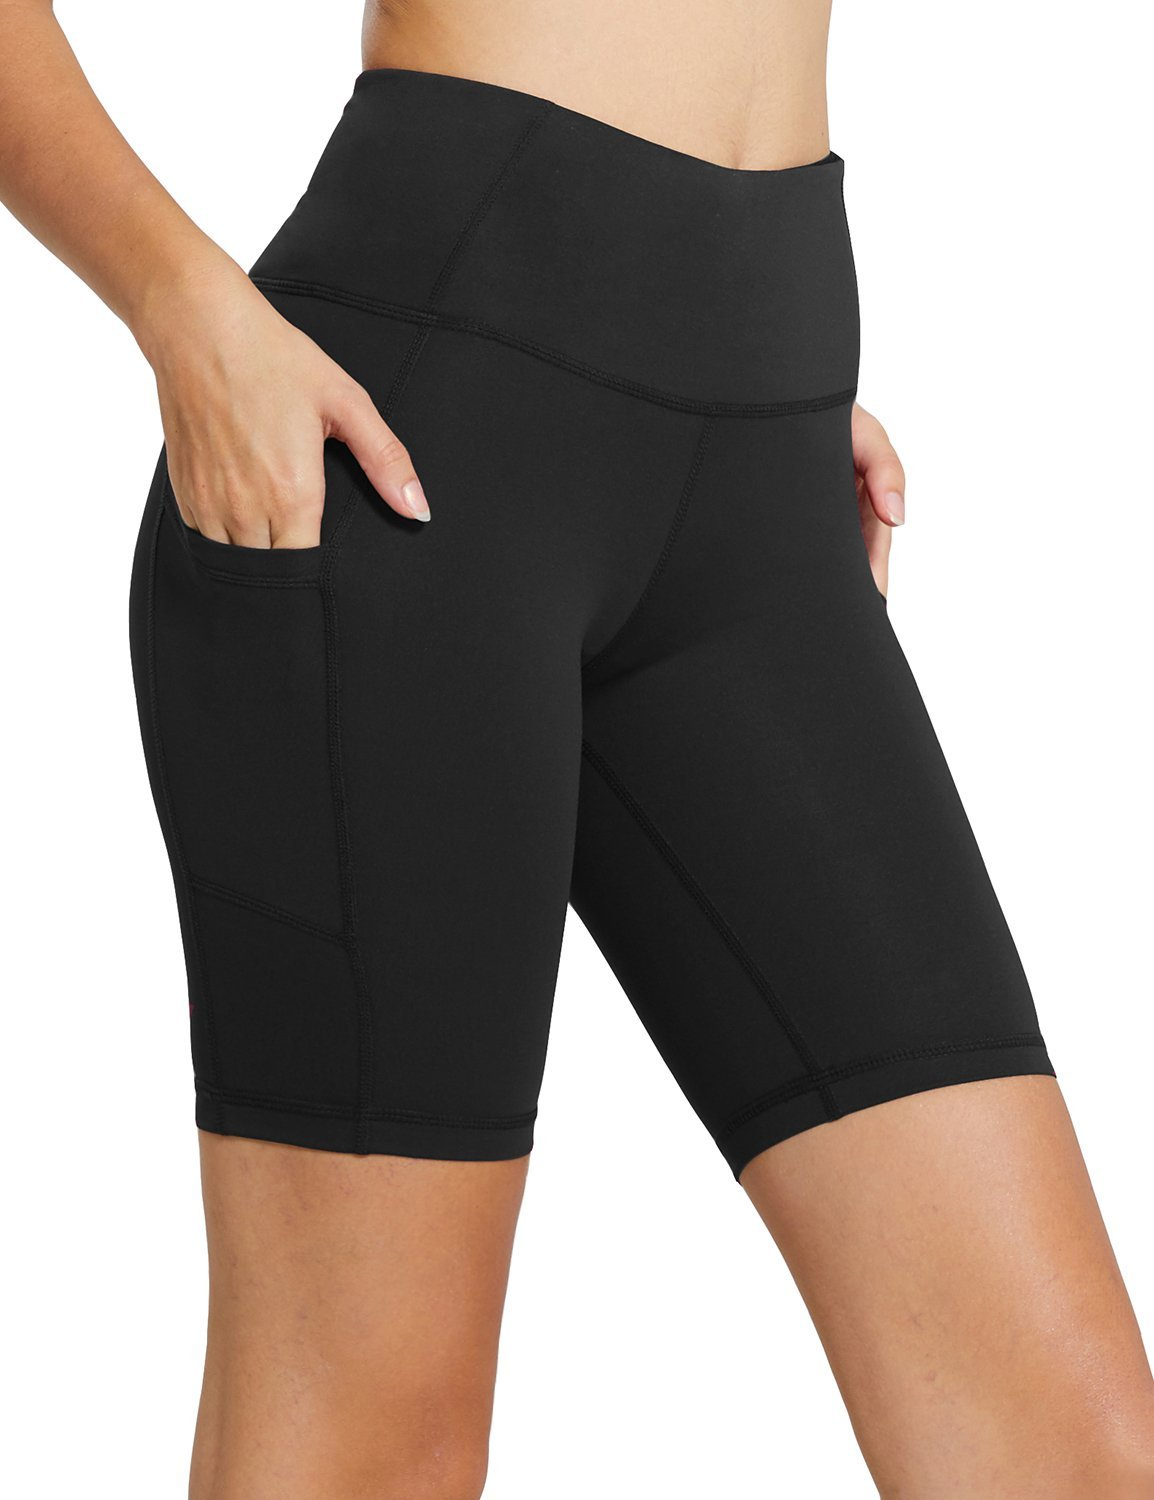 BALEAF Womens 8 /5 /2 High Waist Workout Biker Yoga Running Compression Exercise Shorts Side Pockets (Regular/Plus Size)